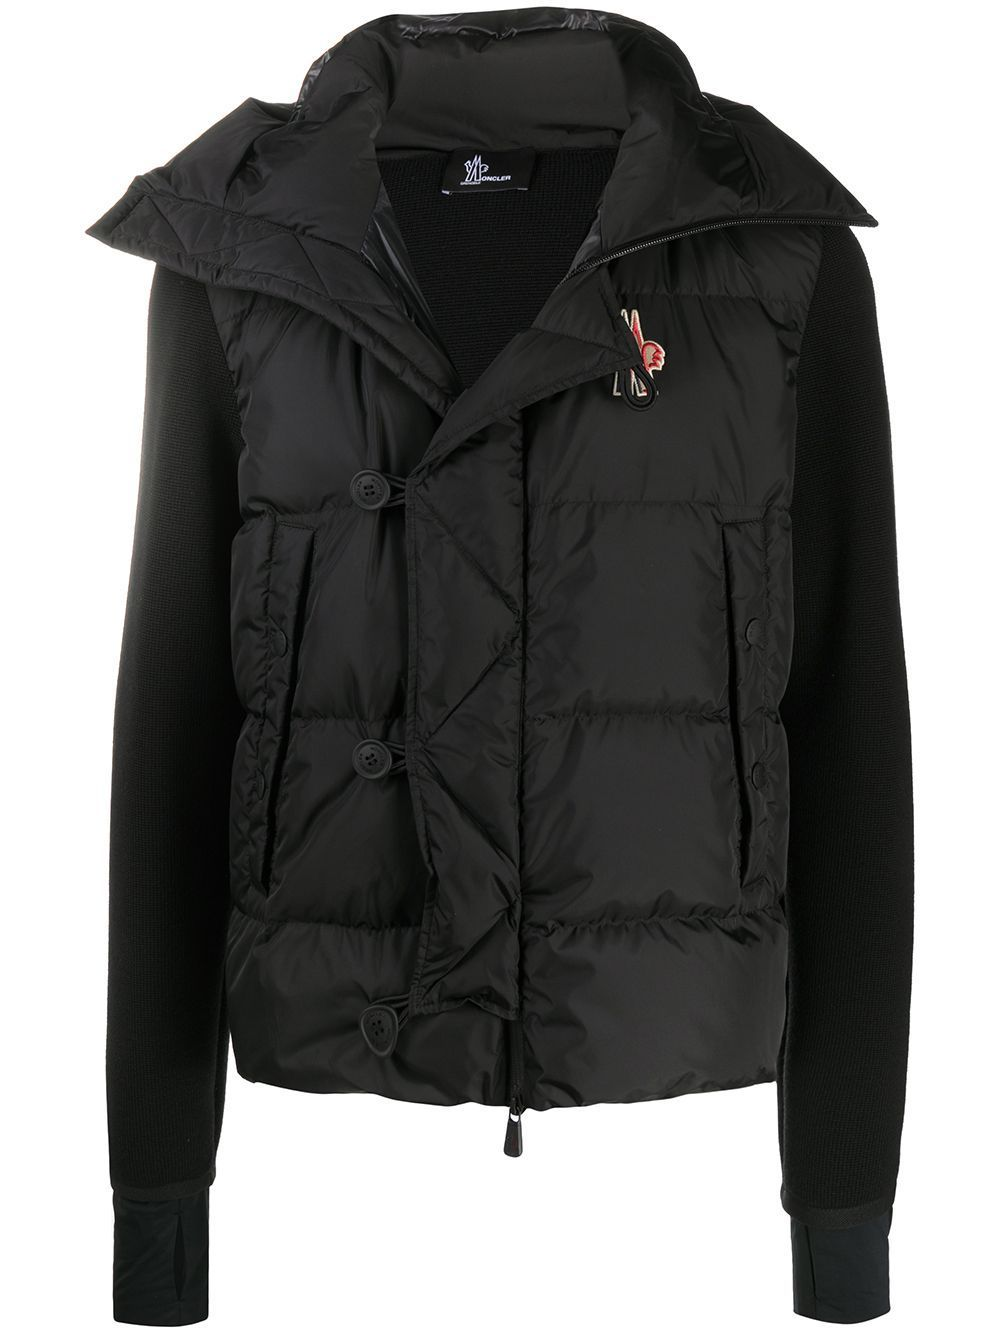 MONCLER GRENOBLE Panelled Padded Jacket Black - Maison De Fashion